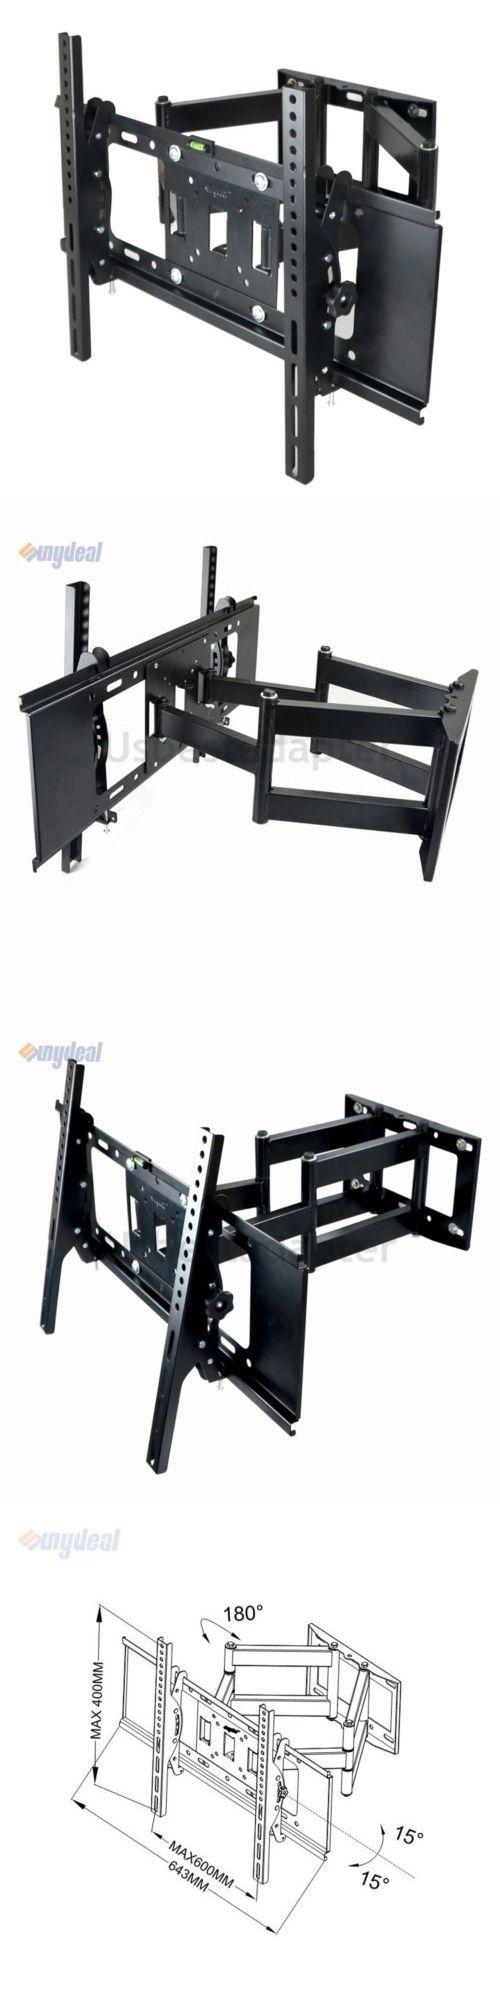 TV Mounts and Brackets: Full Motion Swivel Tv Wall Mount Bracket For 22 -75 Sanus Samsung Led Plasma -> BUY IT NOW ONLY: $32.99 on eBay!